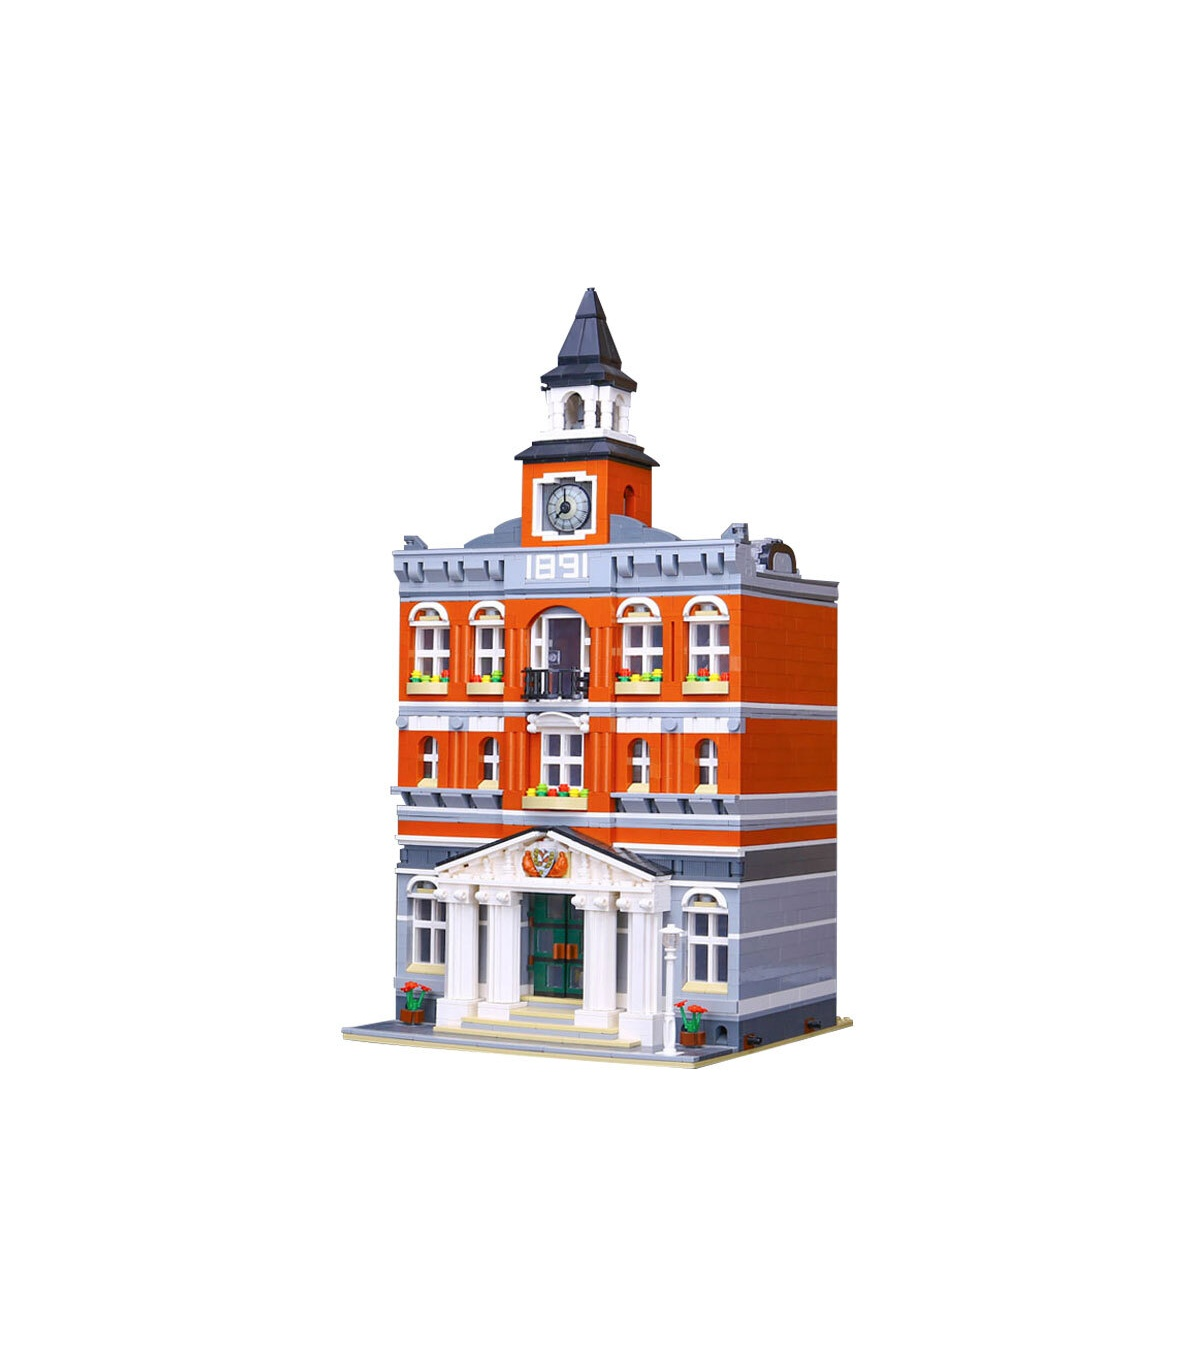 Custom Town Hall Creator Expert Compatible Building Bricks Toy Set 2859 Pieces, (MOC Custom Brick Sets, Compatible Building Blocks Toys Ideas, Building Bricks Meaning)